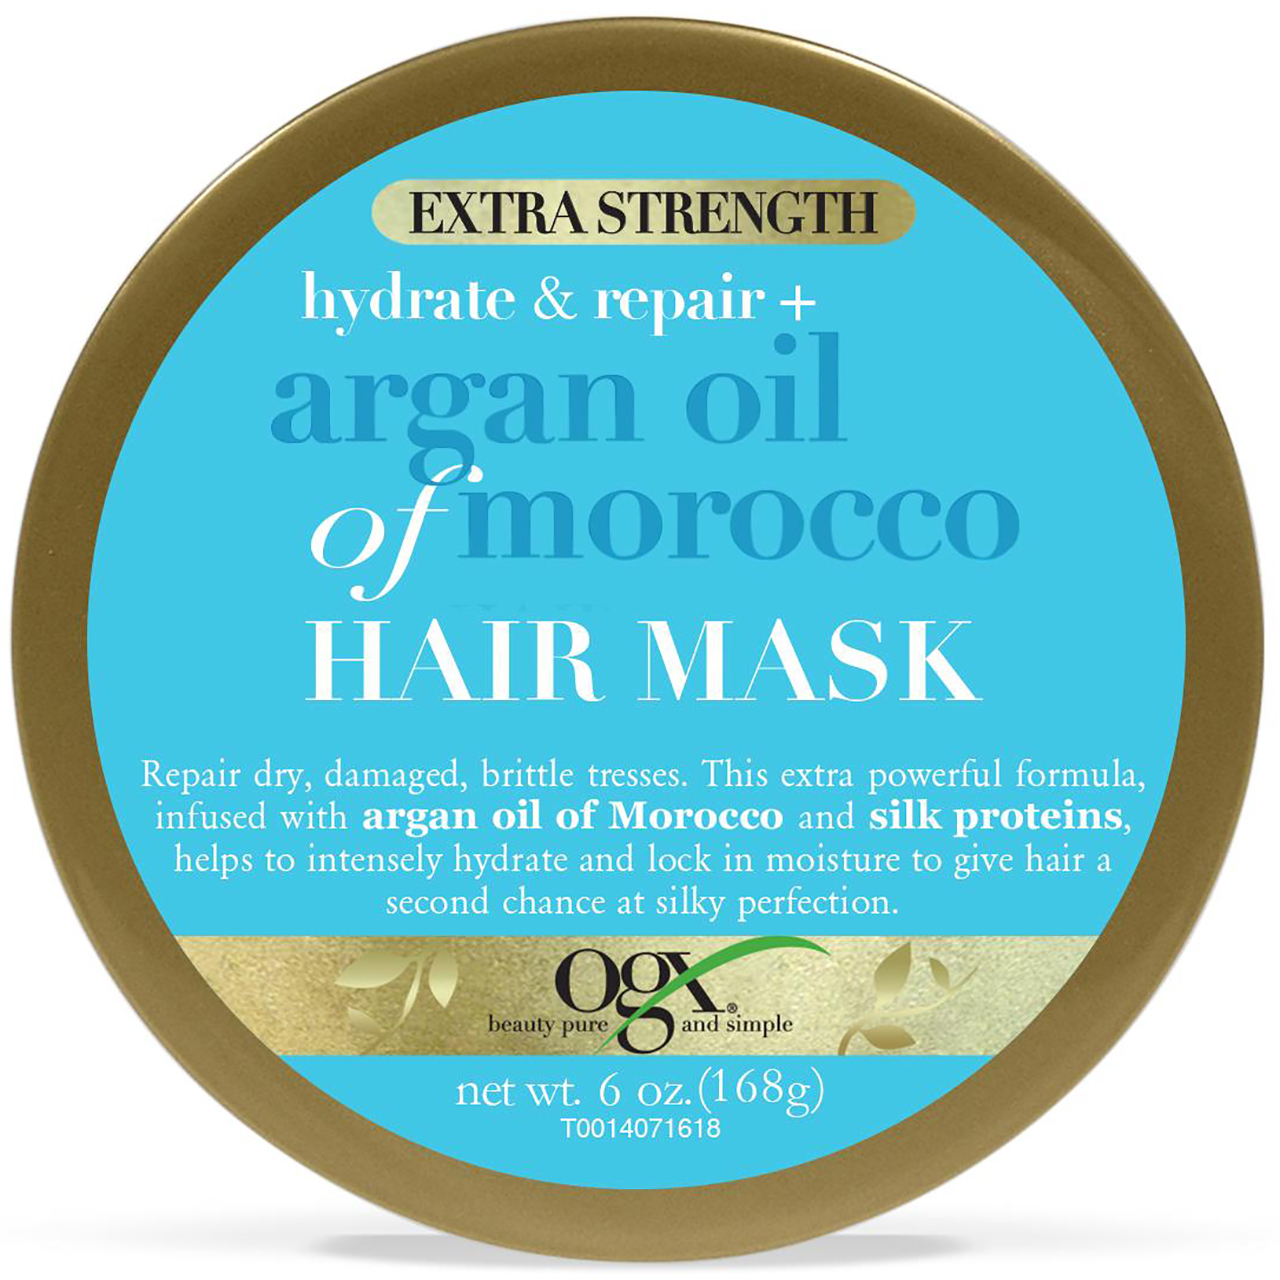 OGX Extra Strength Hydrate & Repair + Argan Oil of Morocco Hair Mask